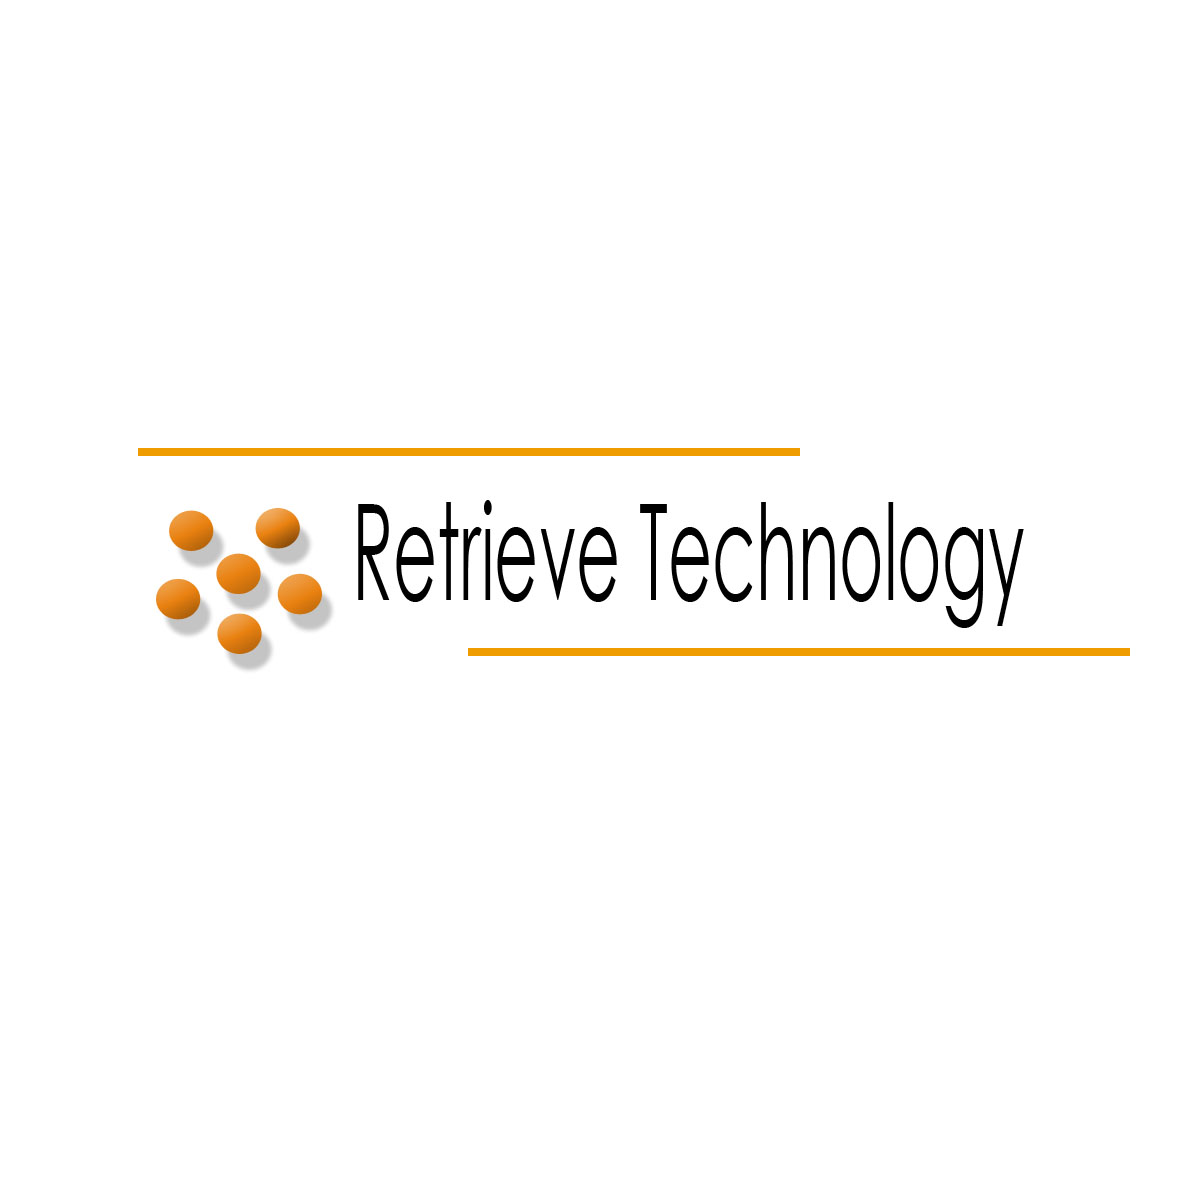 Logo Design by Moag - Entry No. 49 in the Logo Design Contest Artistic Logo Design for Retrieve Technologies.